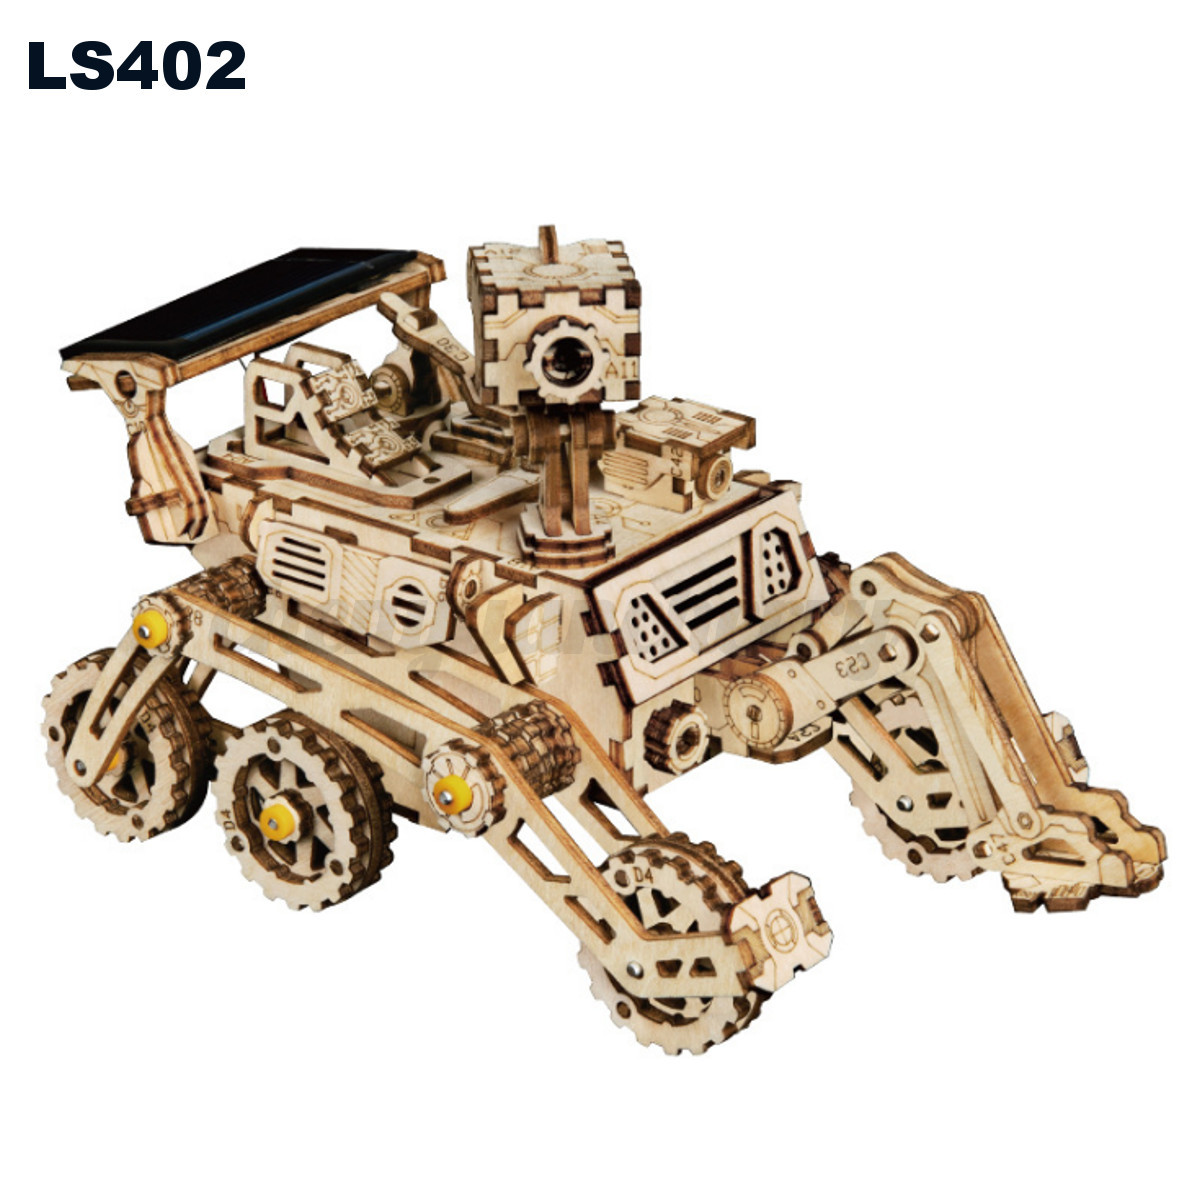 3D-Wooden-Puzzle-Cut-Solar-Energy-Marble-Run-Kits-Toy-Gift-for-Adults-Kids thumbnail 14